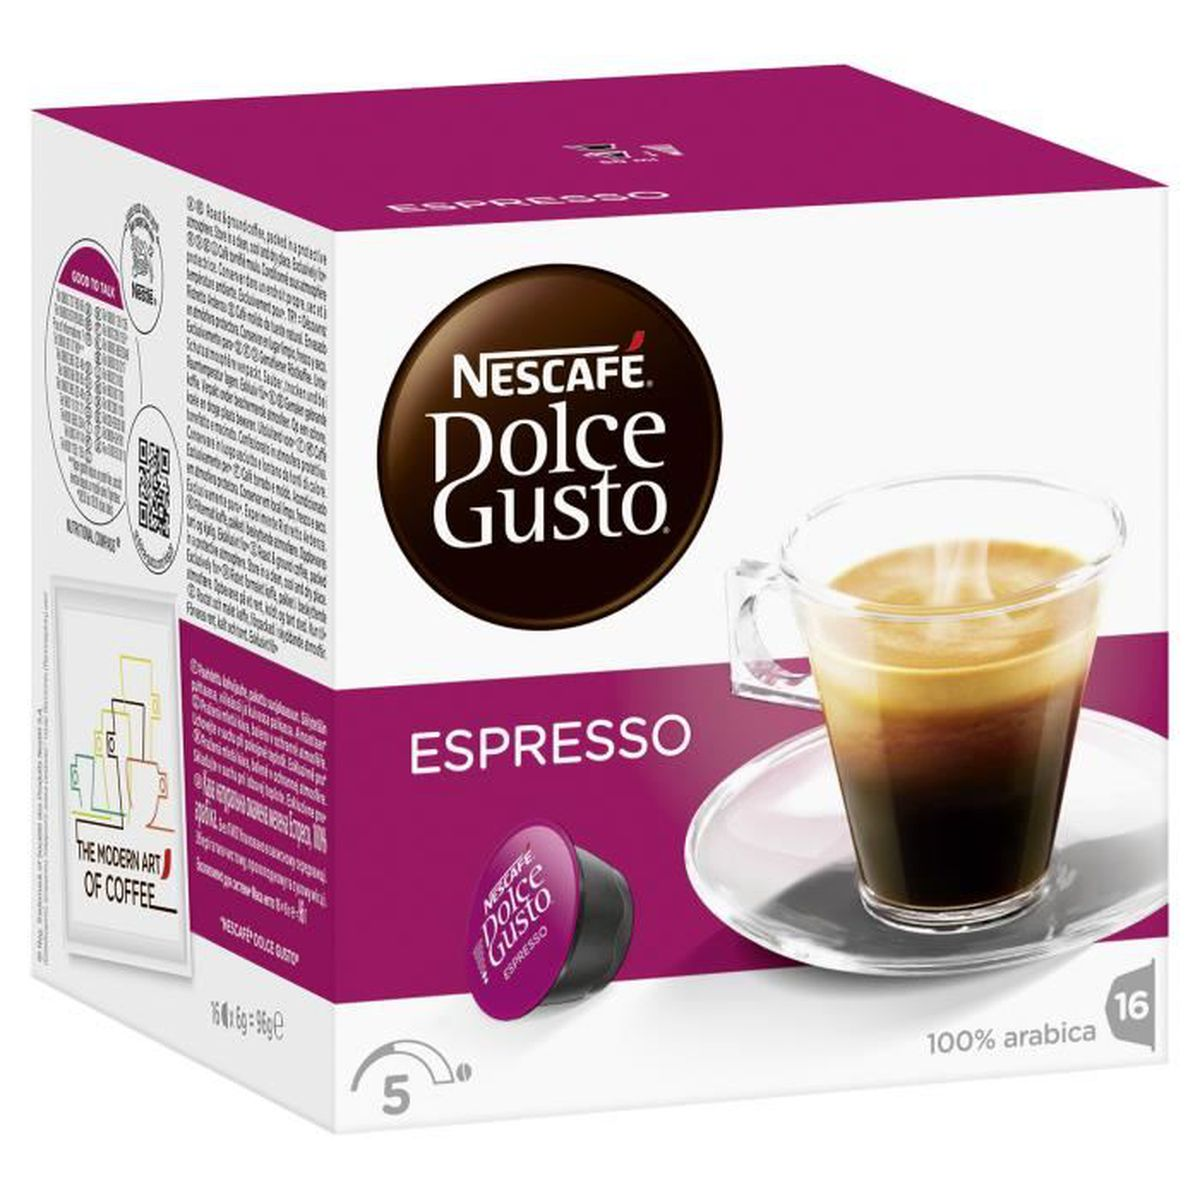 nescafe dolce gusto espresso cafe 16 dosettes achat. Black Bedroom Furniture Sets. Home Design Ideas